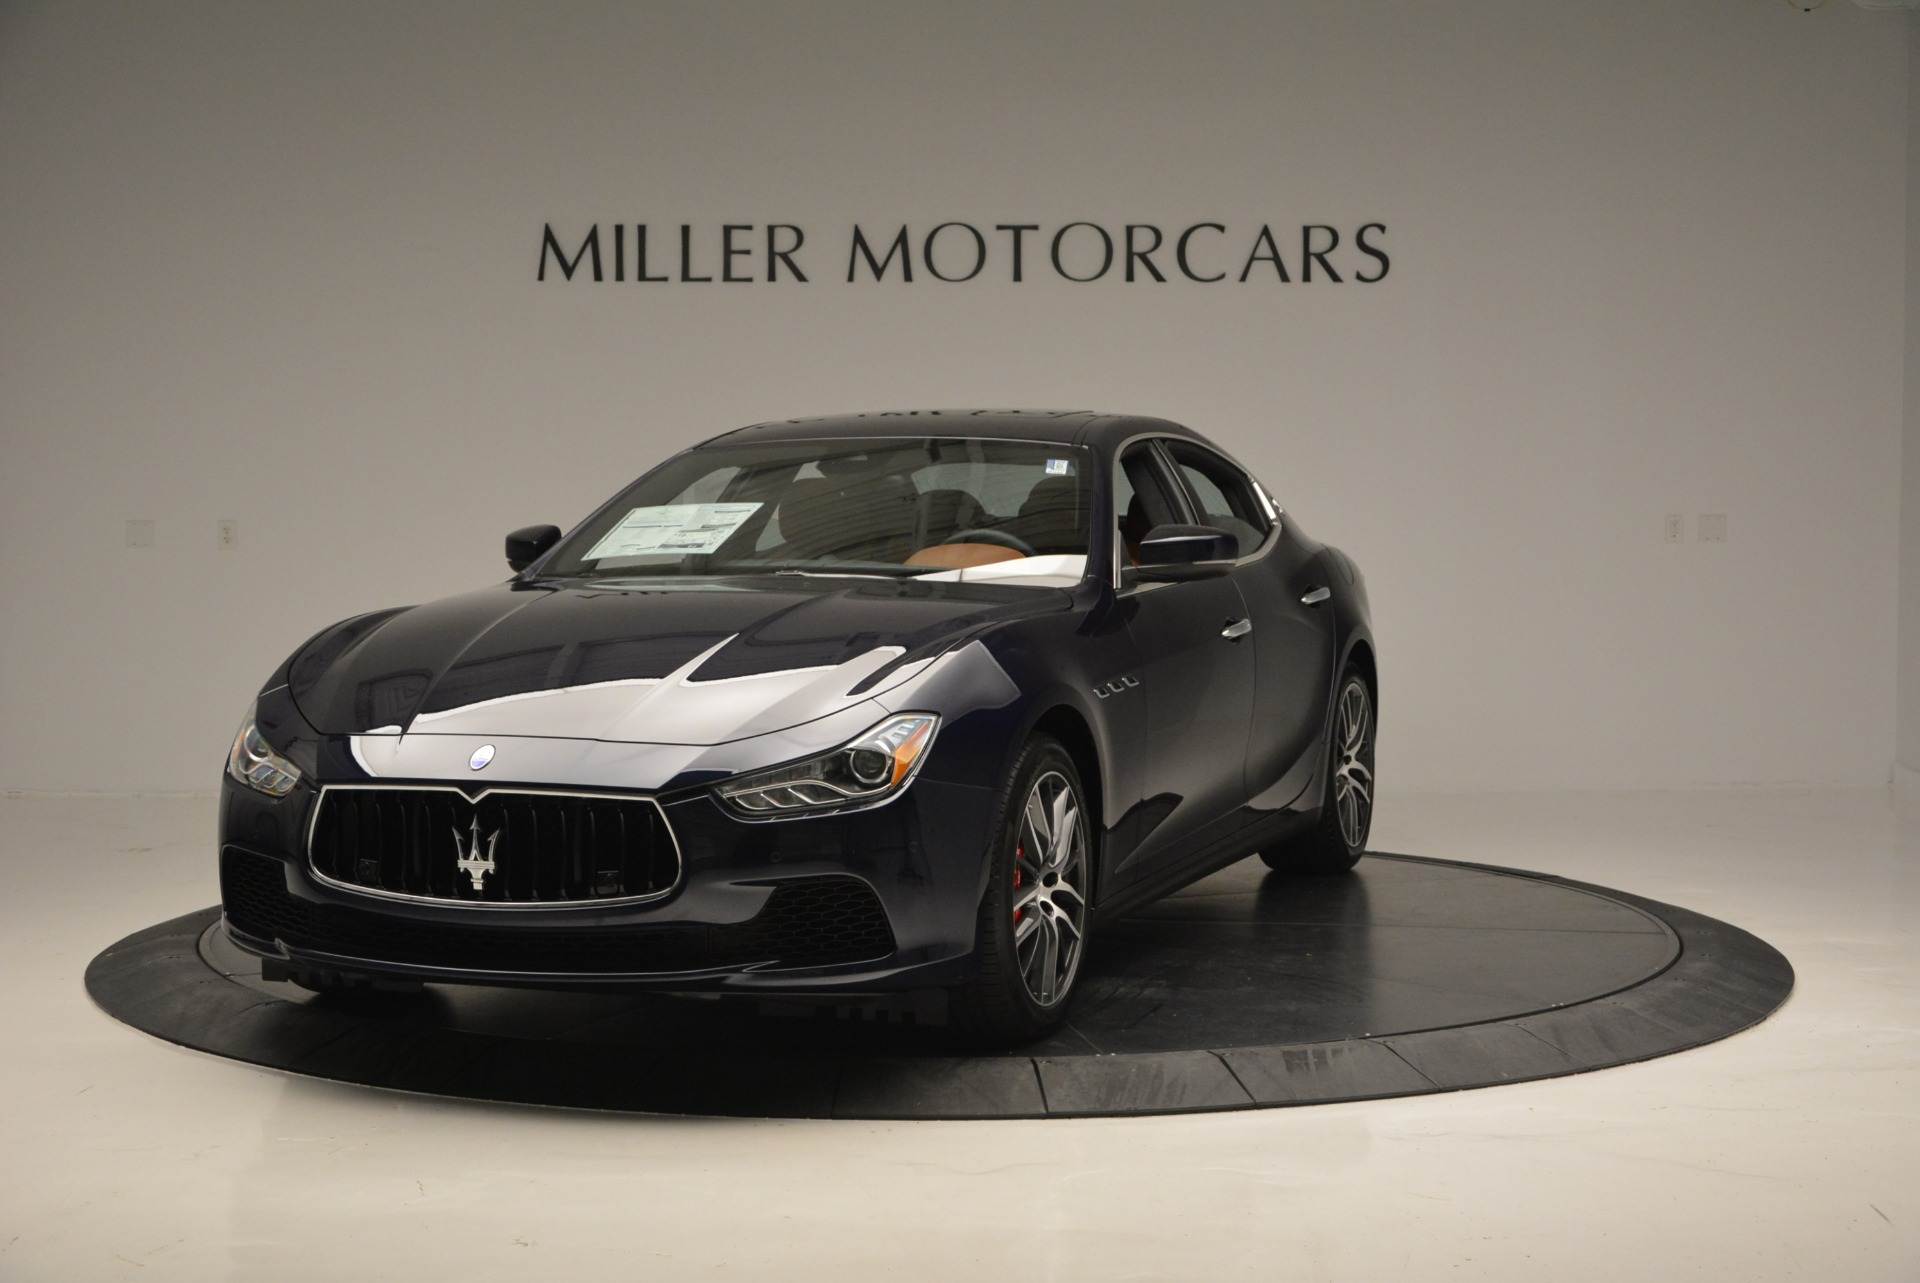 Used 2017 Maserati Ghibli S Q4 for sale $44,900 at Bentley Greenwich in Greenwich CT 06830 1